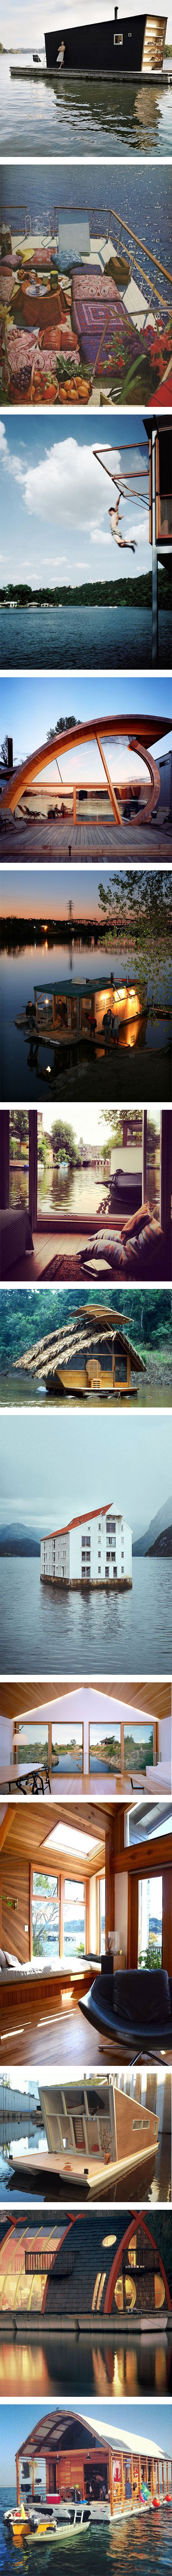 13 amazing houseboats that we want to live in on Nuji.com